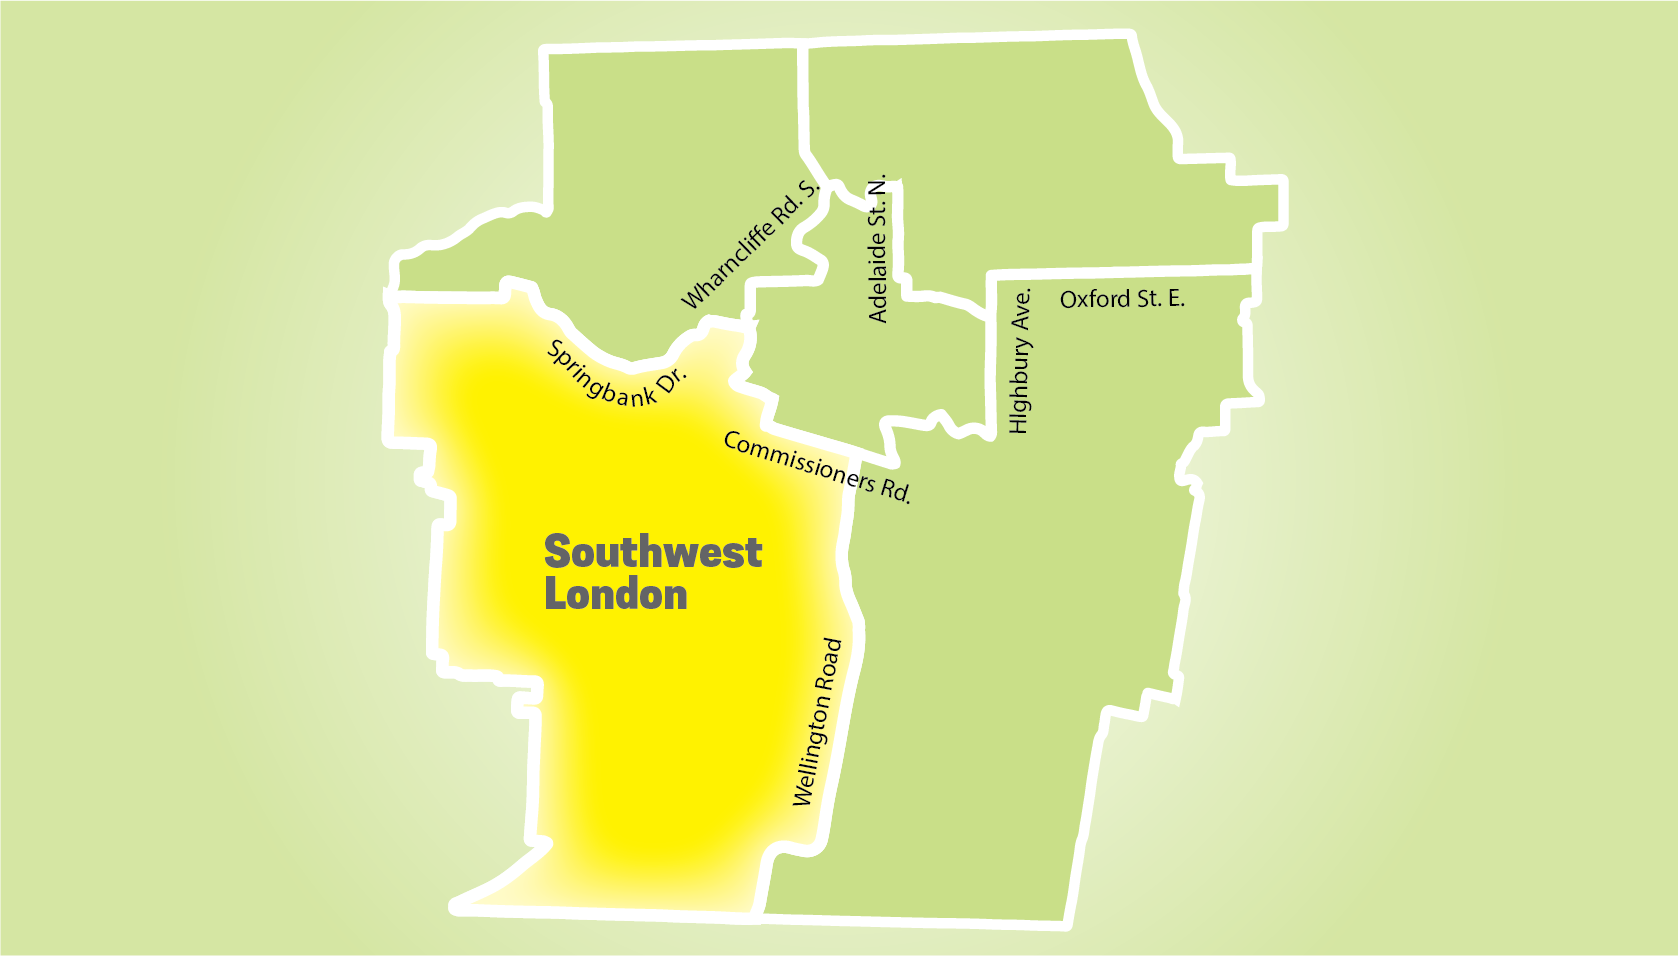 Image of London featuring Southwest London.